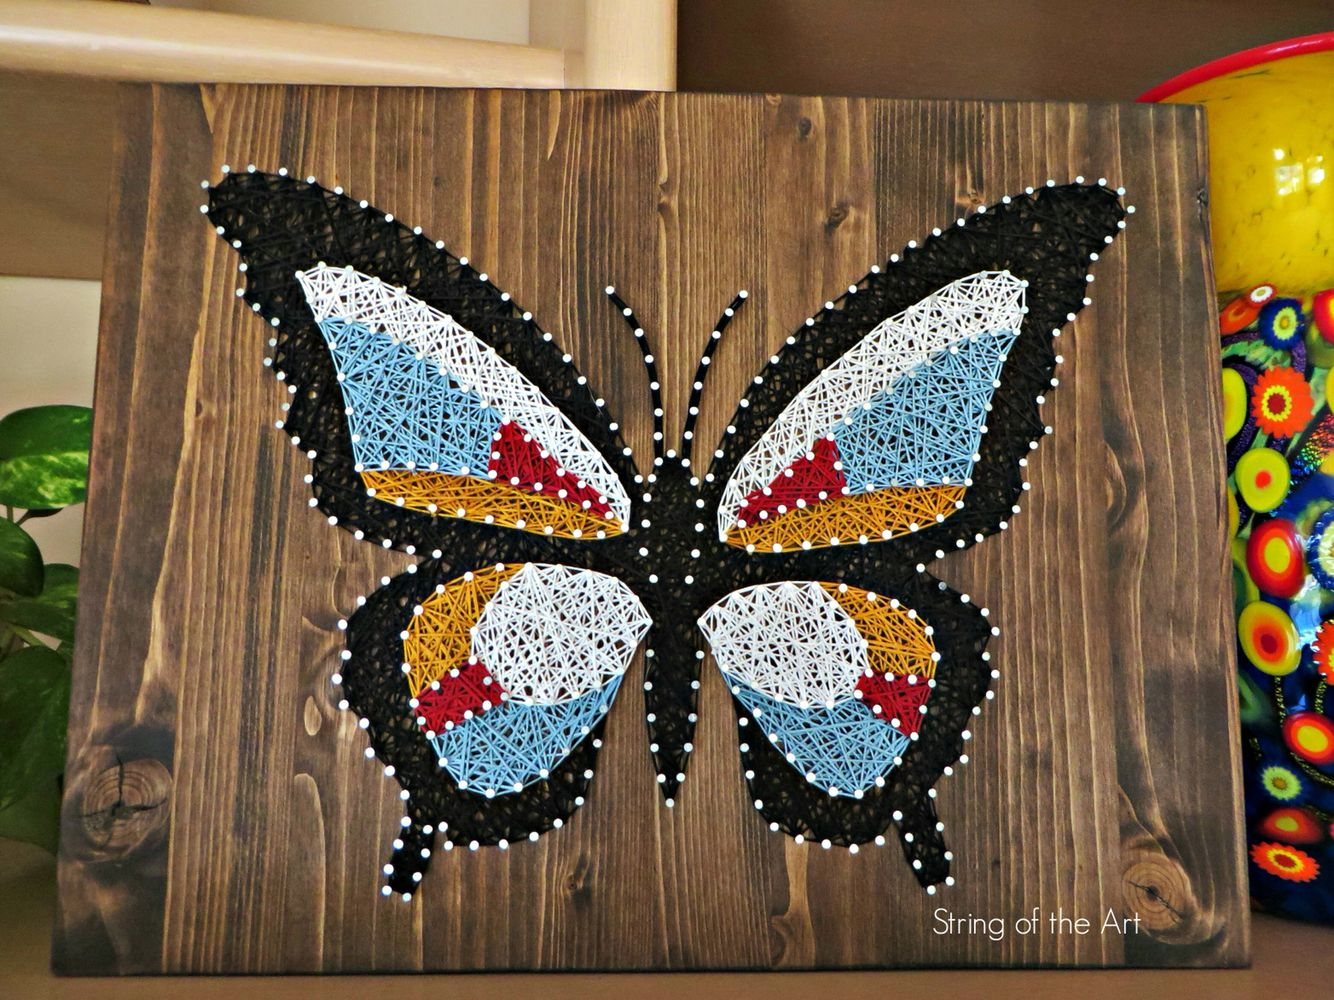 String Art DIY Crafts Kit. Save 10% off the purchase price of this ...